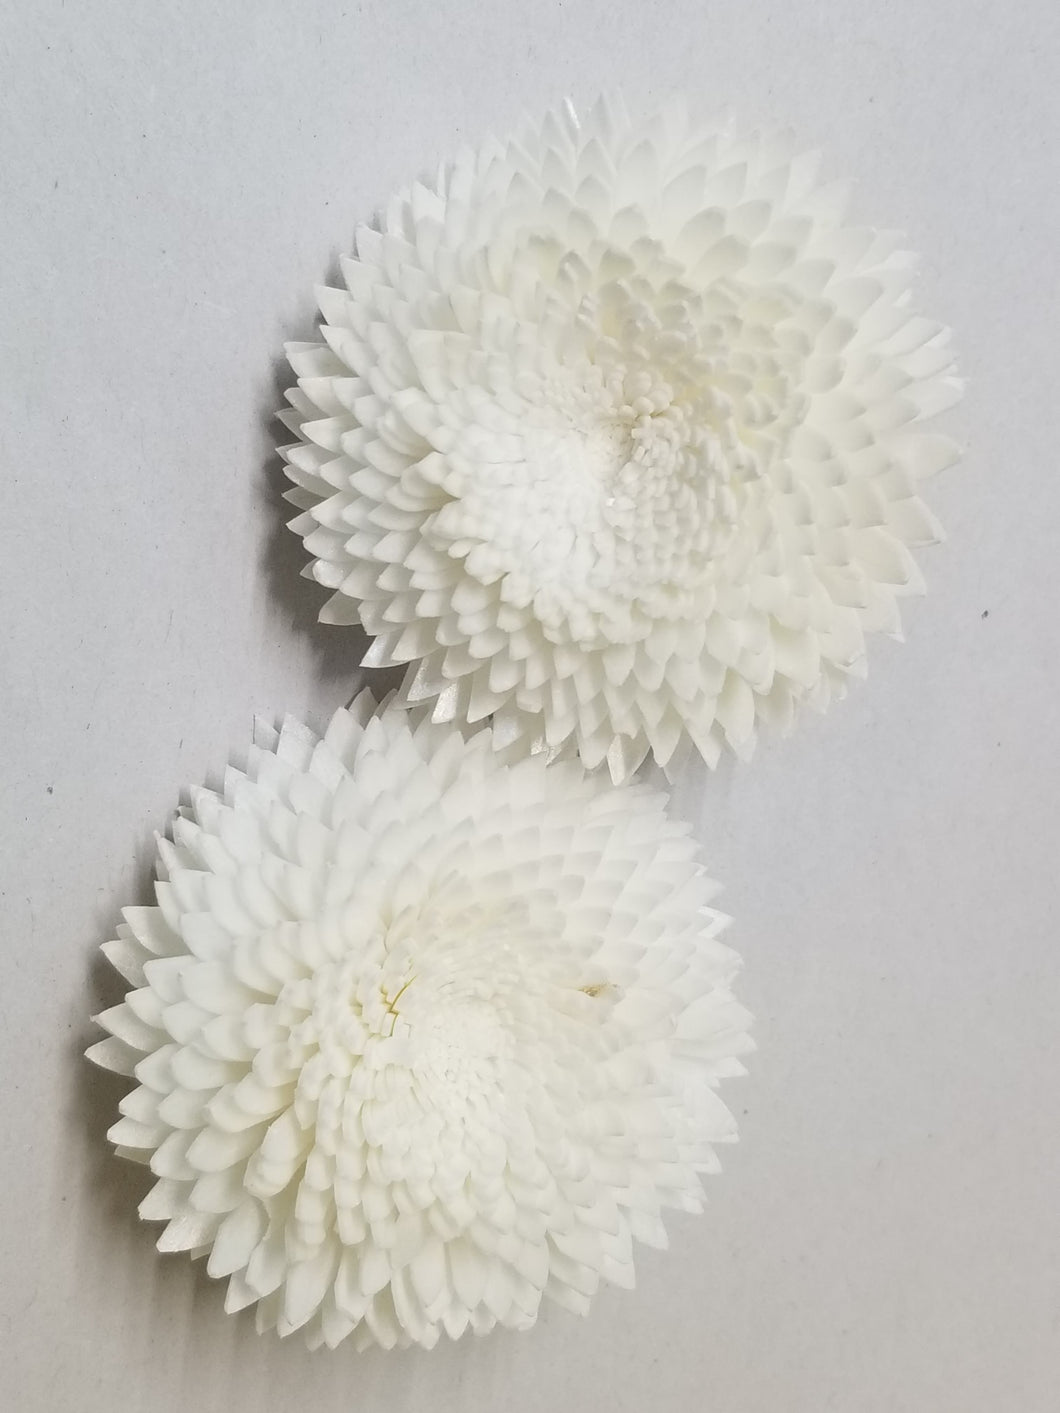 Chrysanthemum  - 2